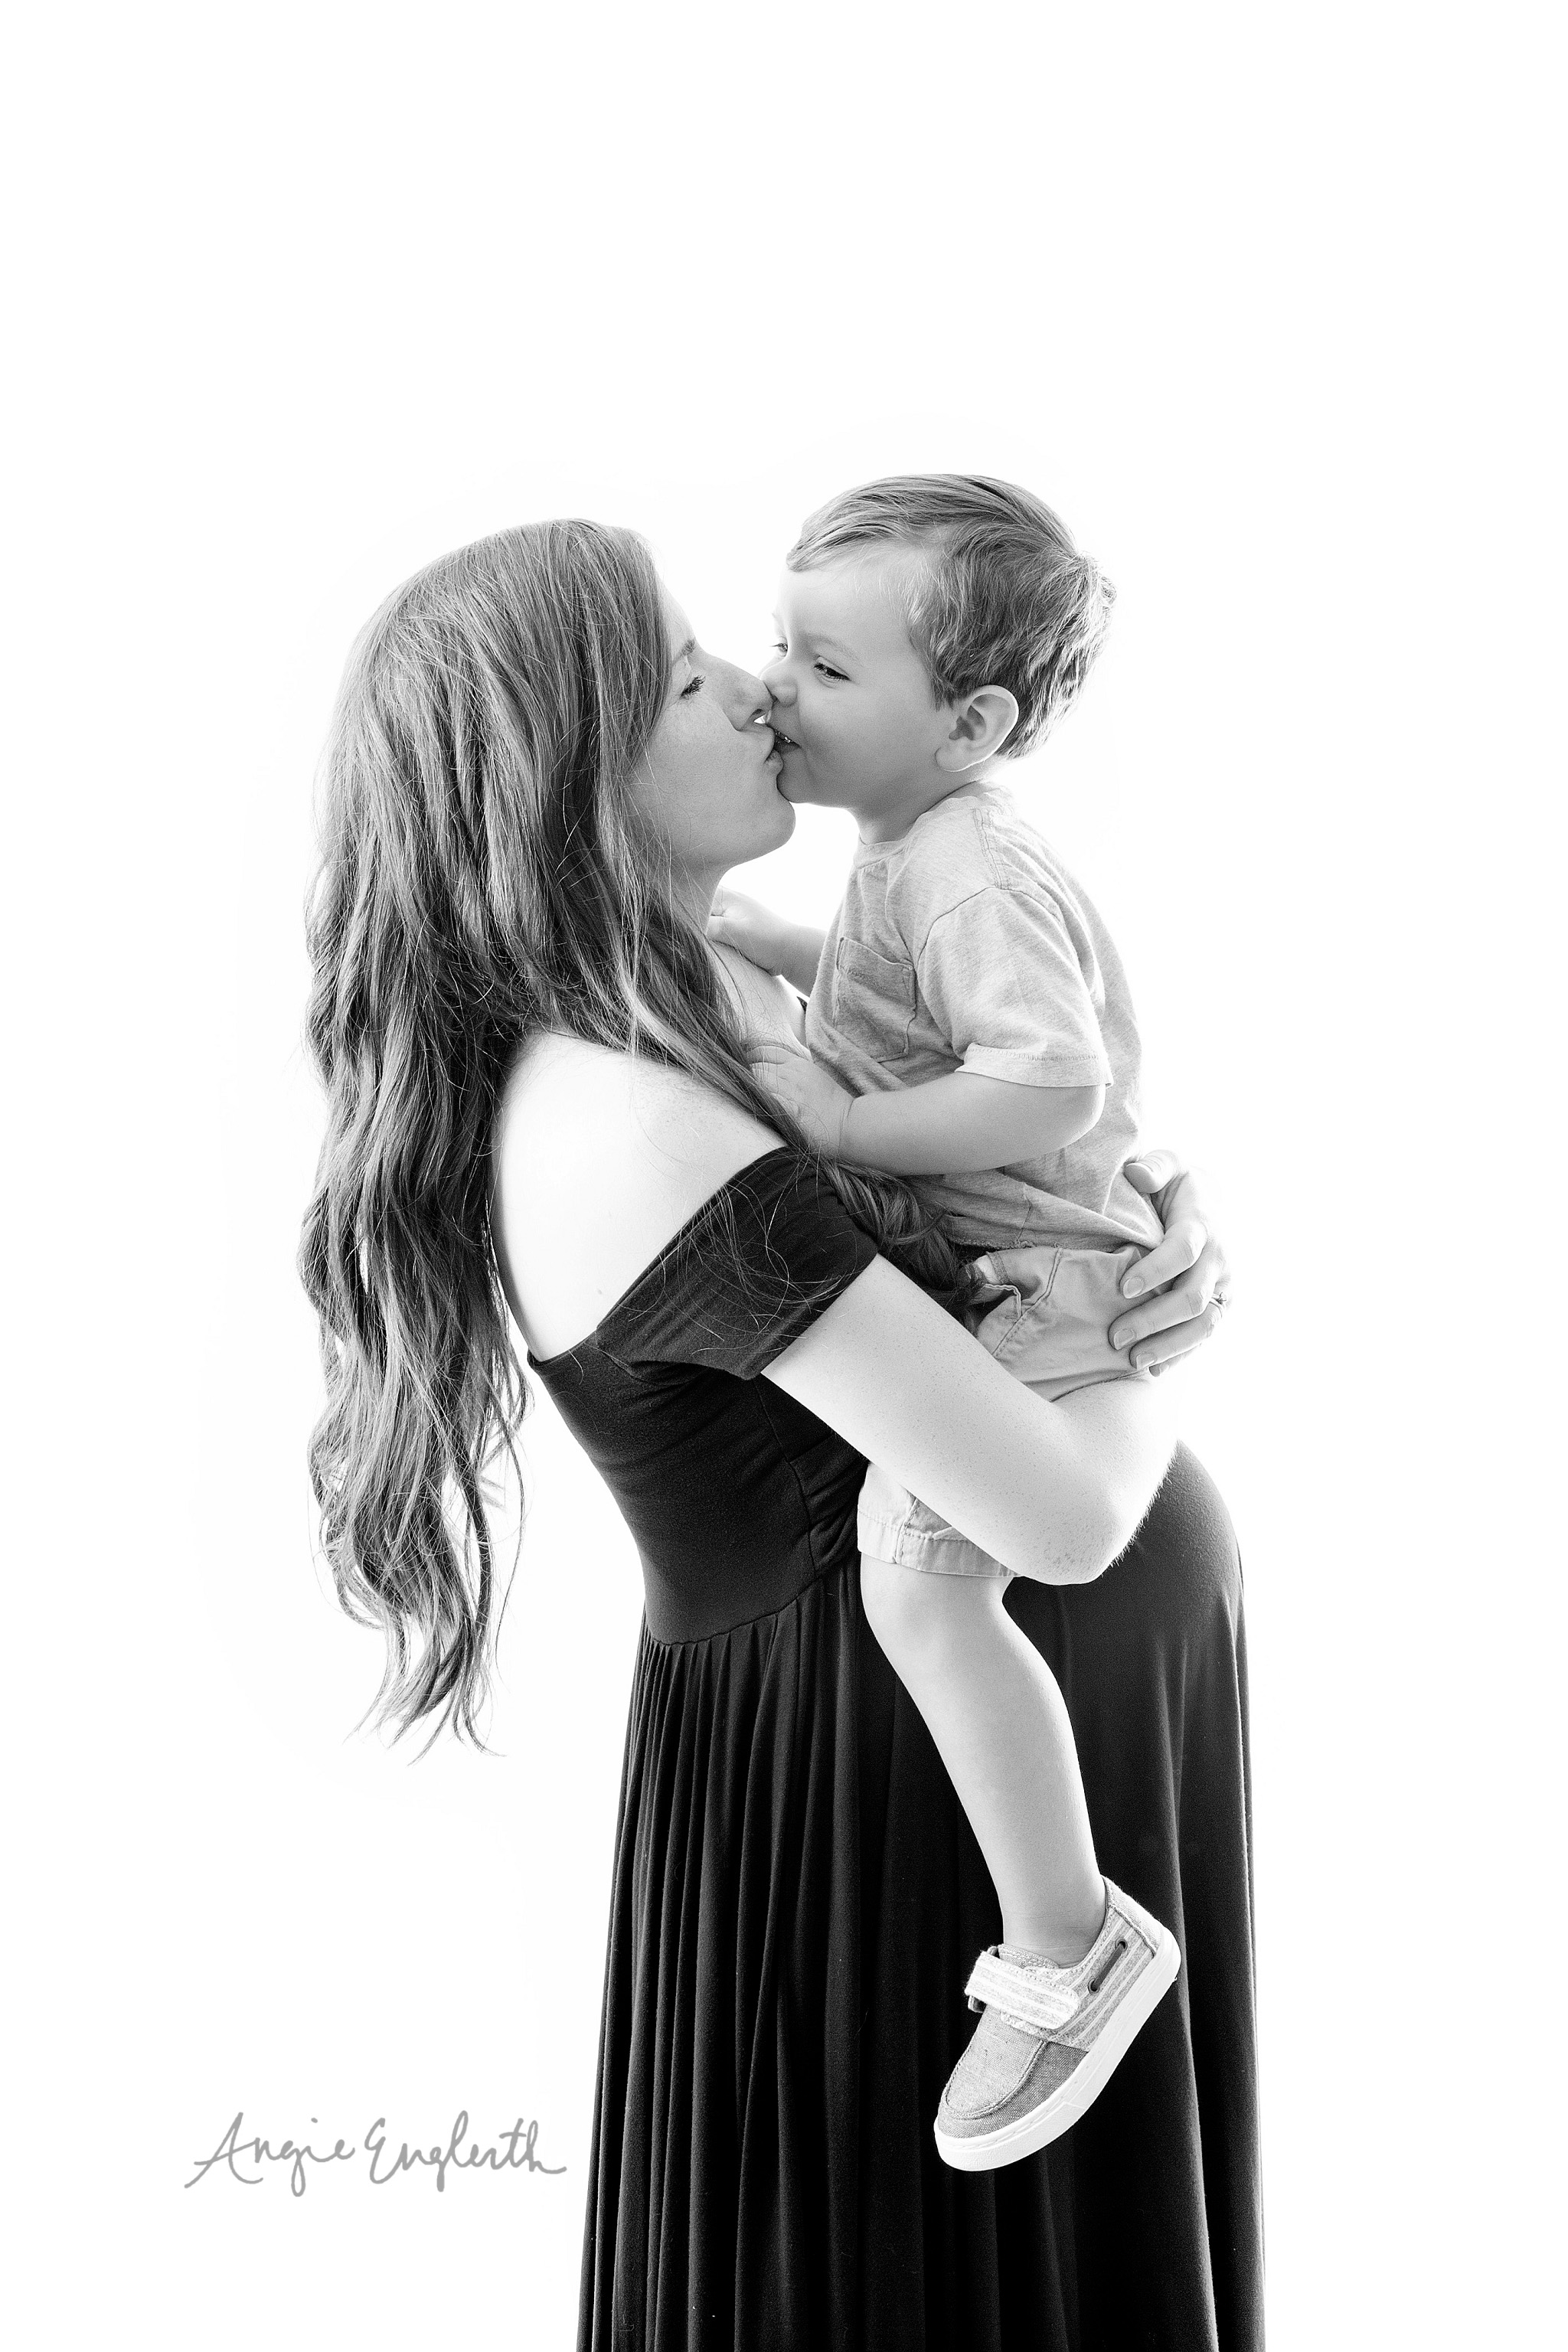 lancaster_maternity_photographer_angie_englerth_central_pa_b068.jpg